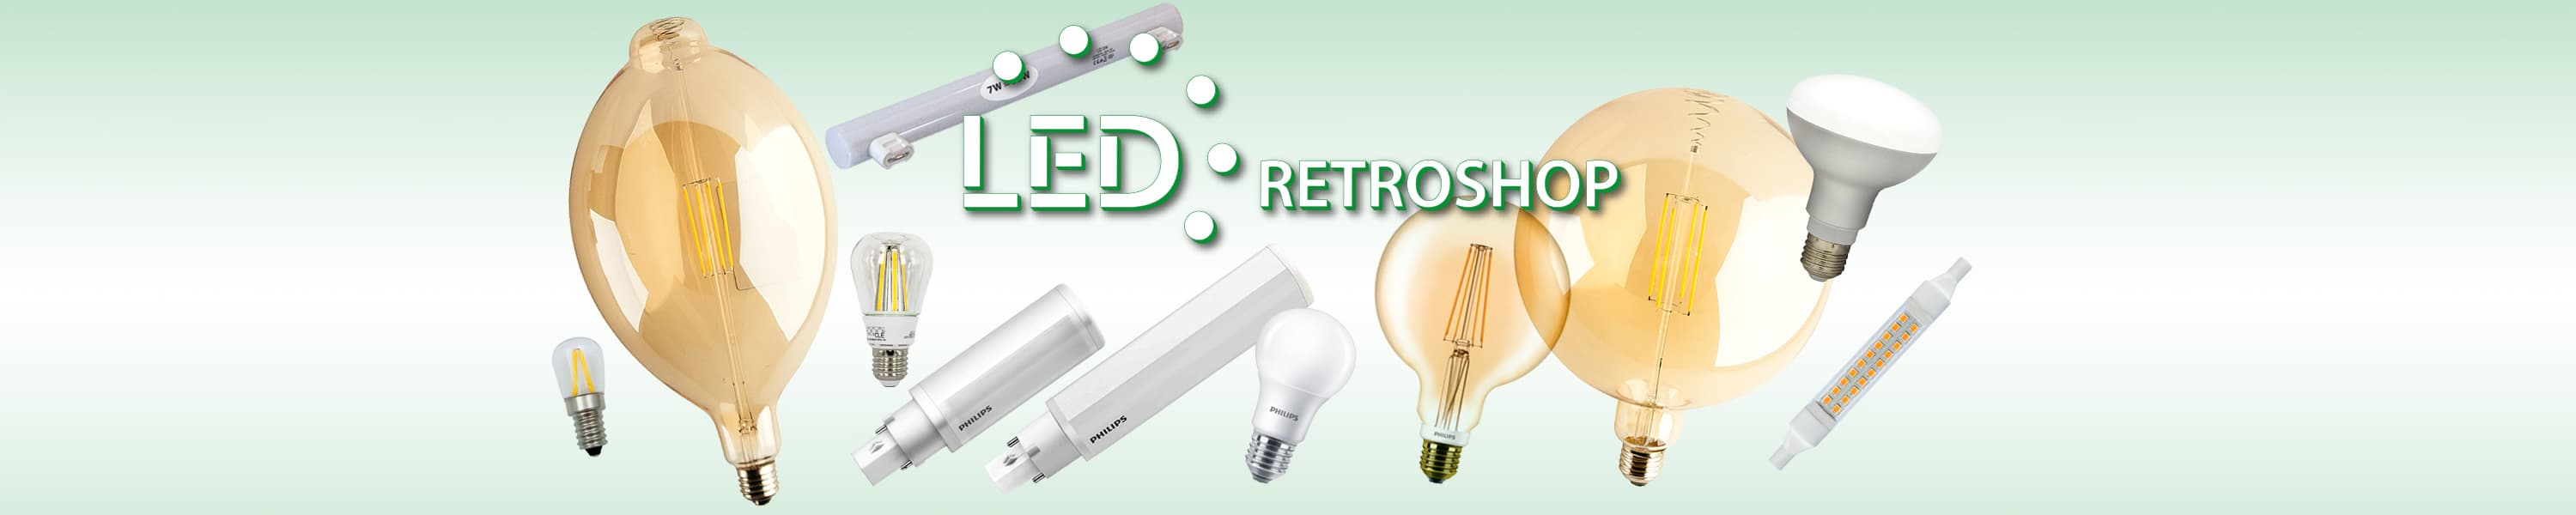 LED-Retroshop-Leuchtmittel-Slider